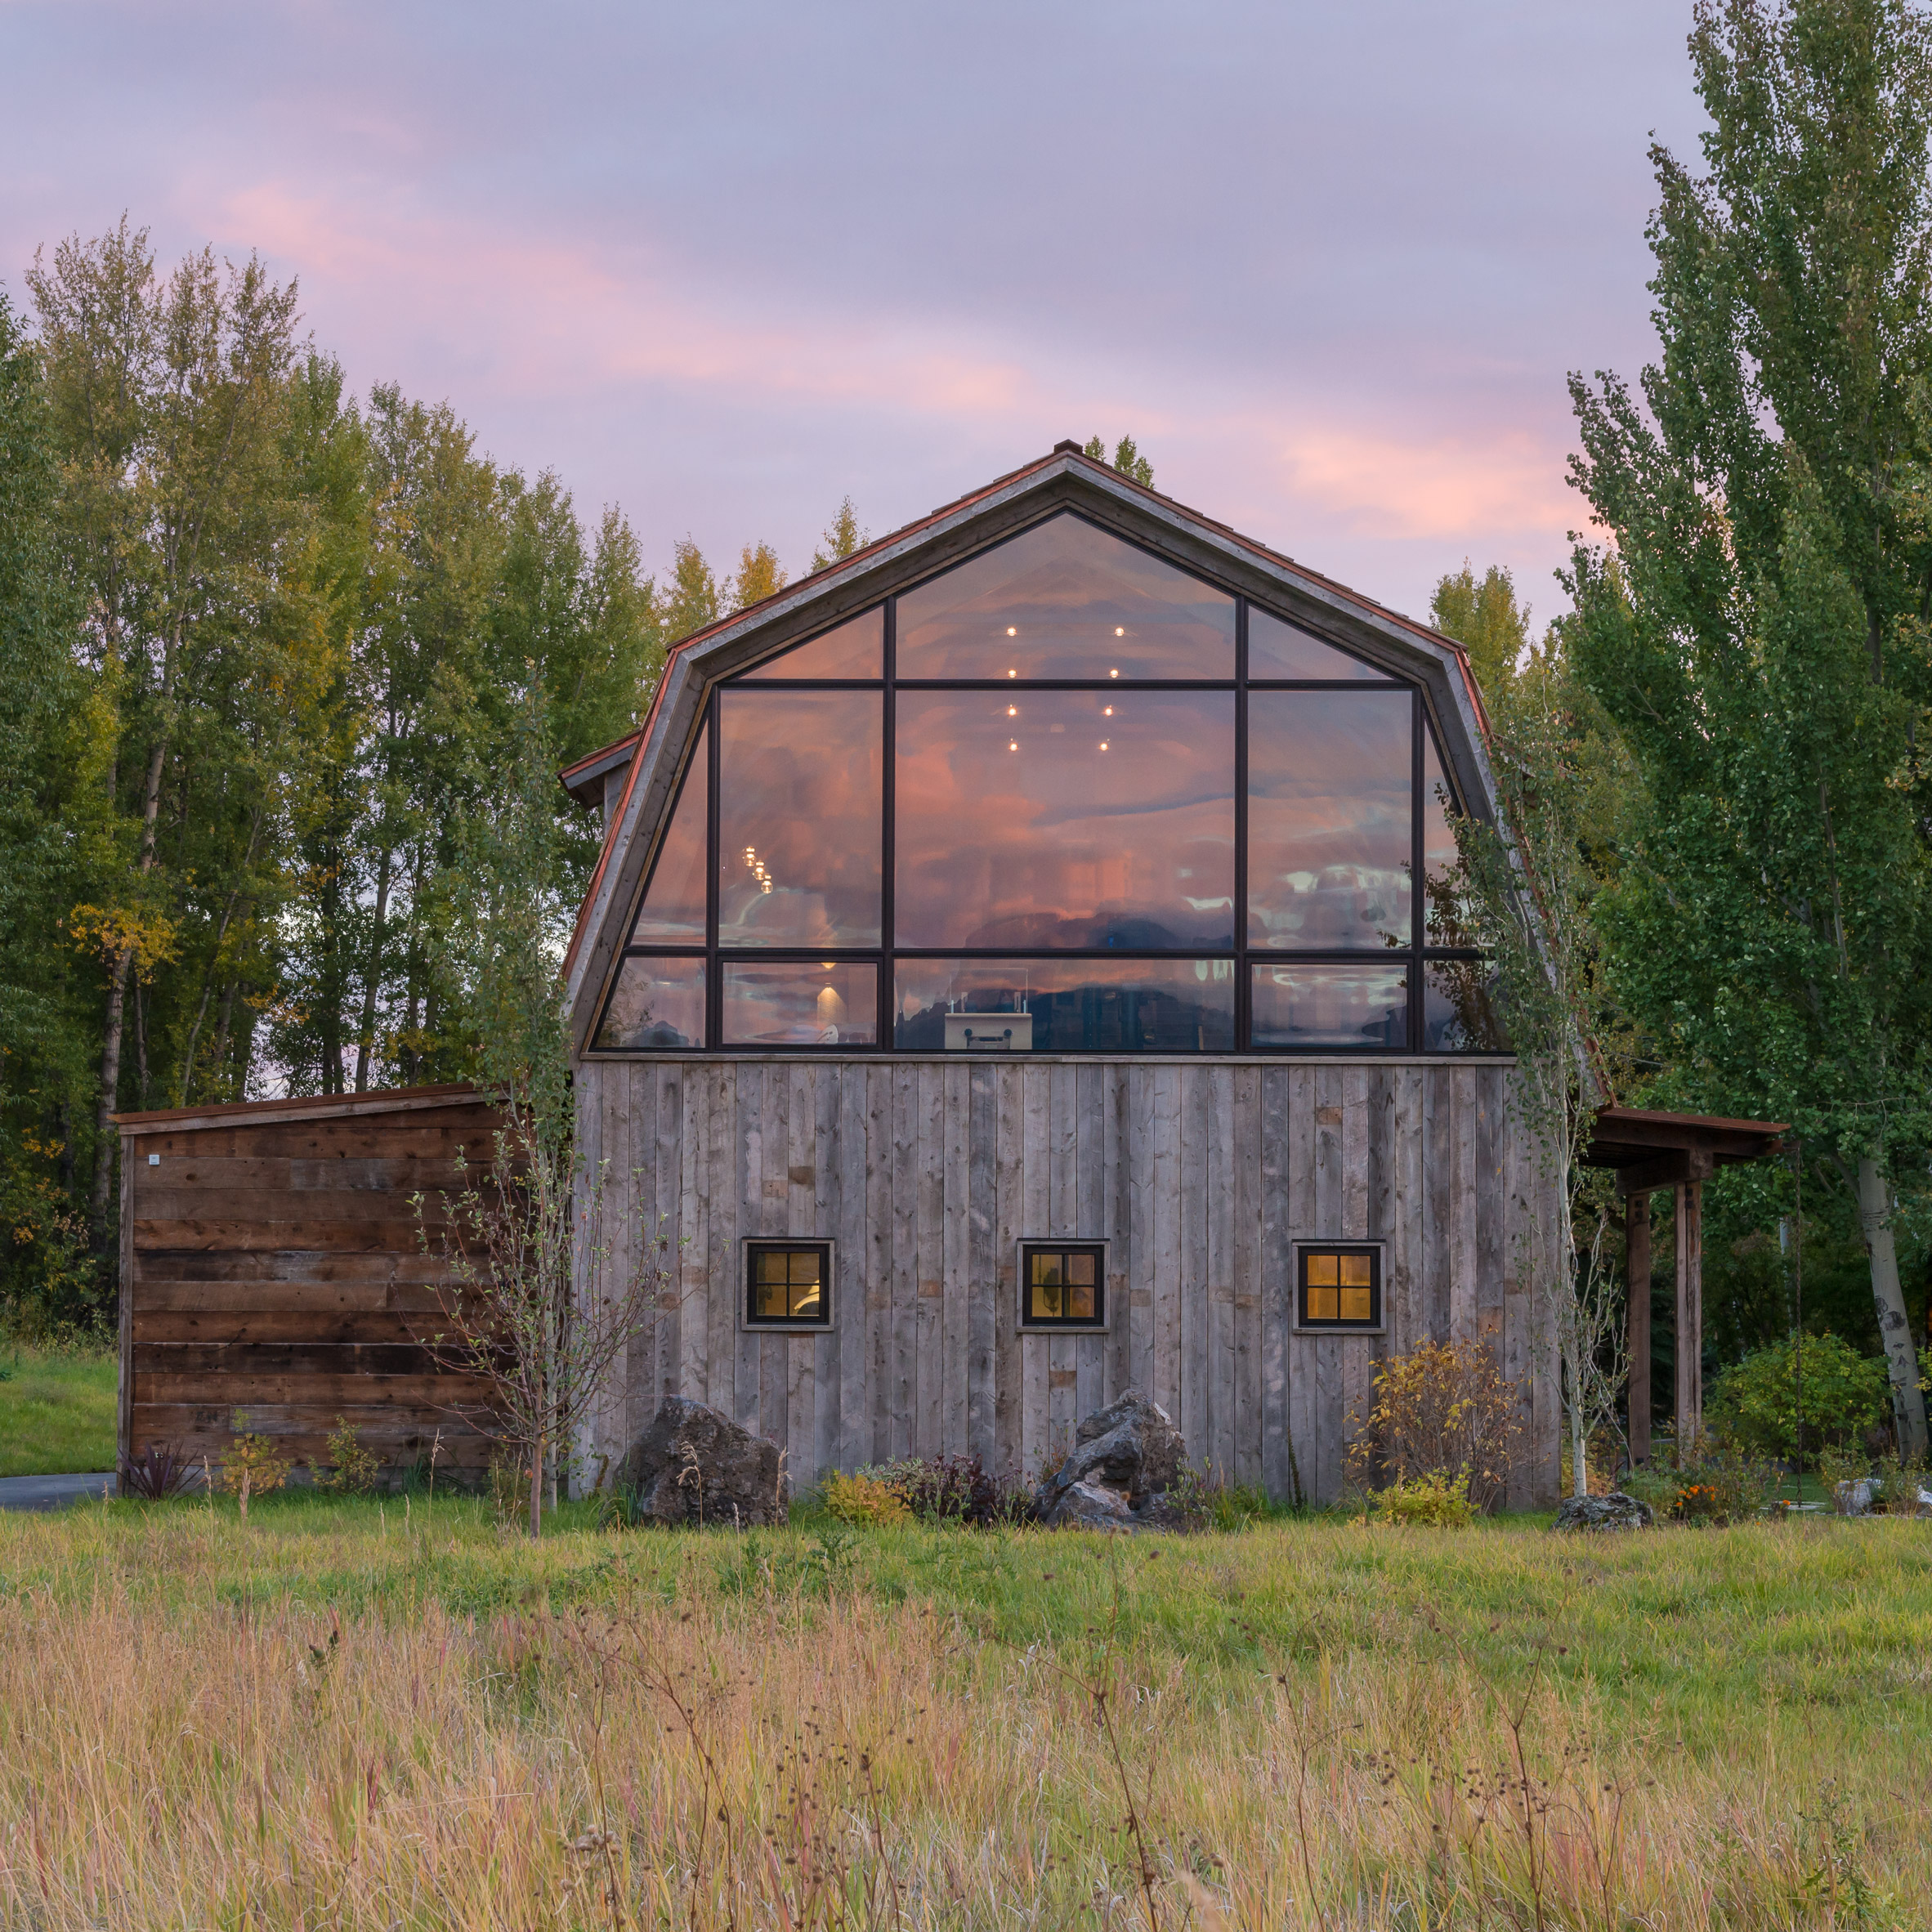 Carney Logan Burke Creates Barn Shaped Guest House In Rural Wyoming How To Install An Electric Clothes Dryer Yahoo Voices